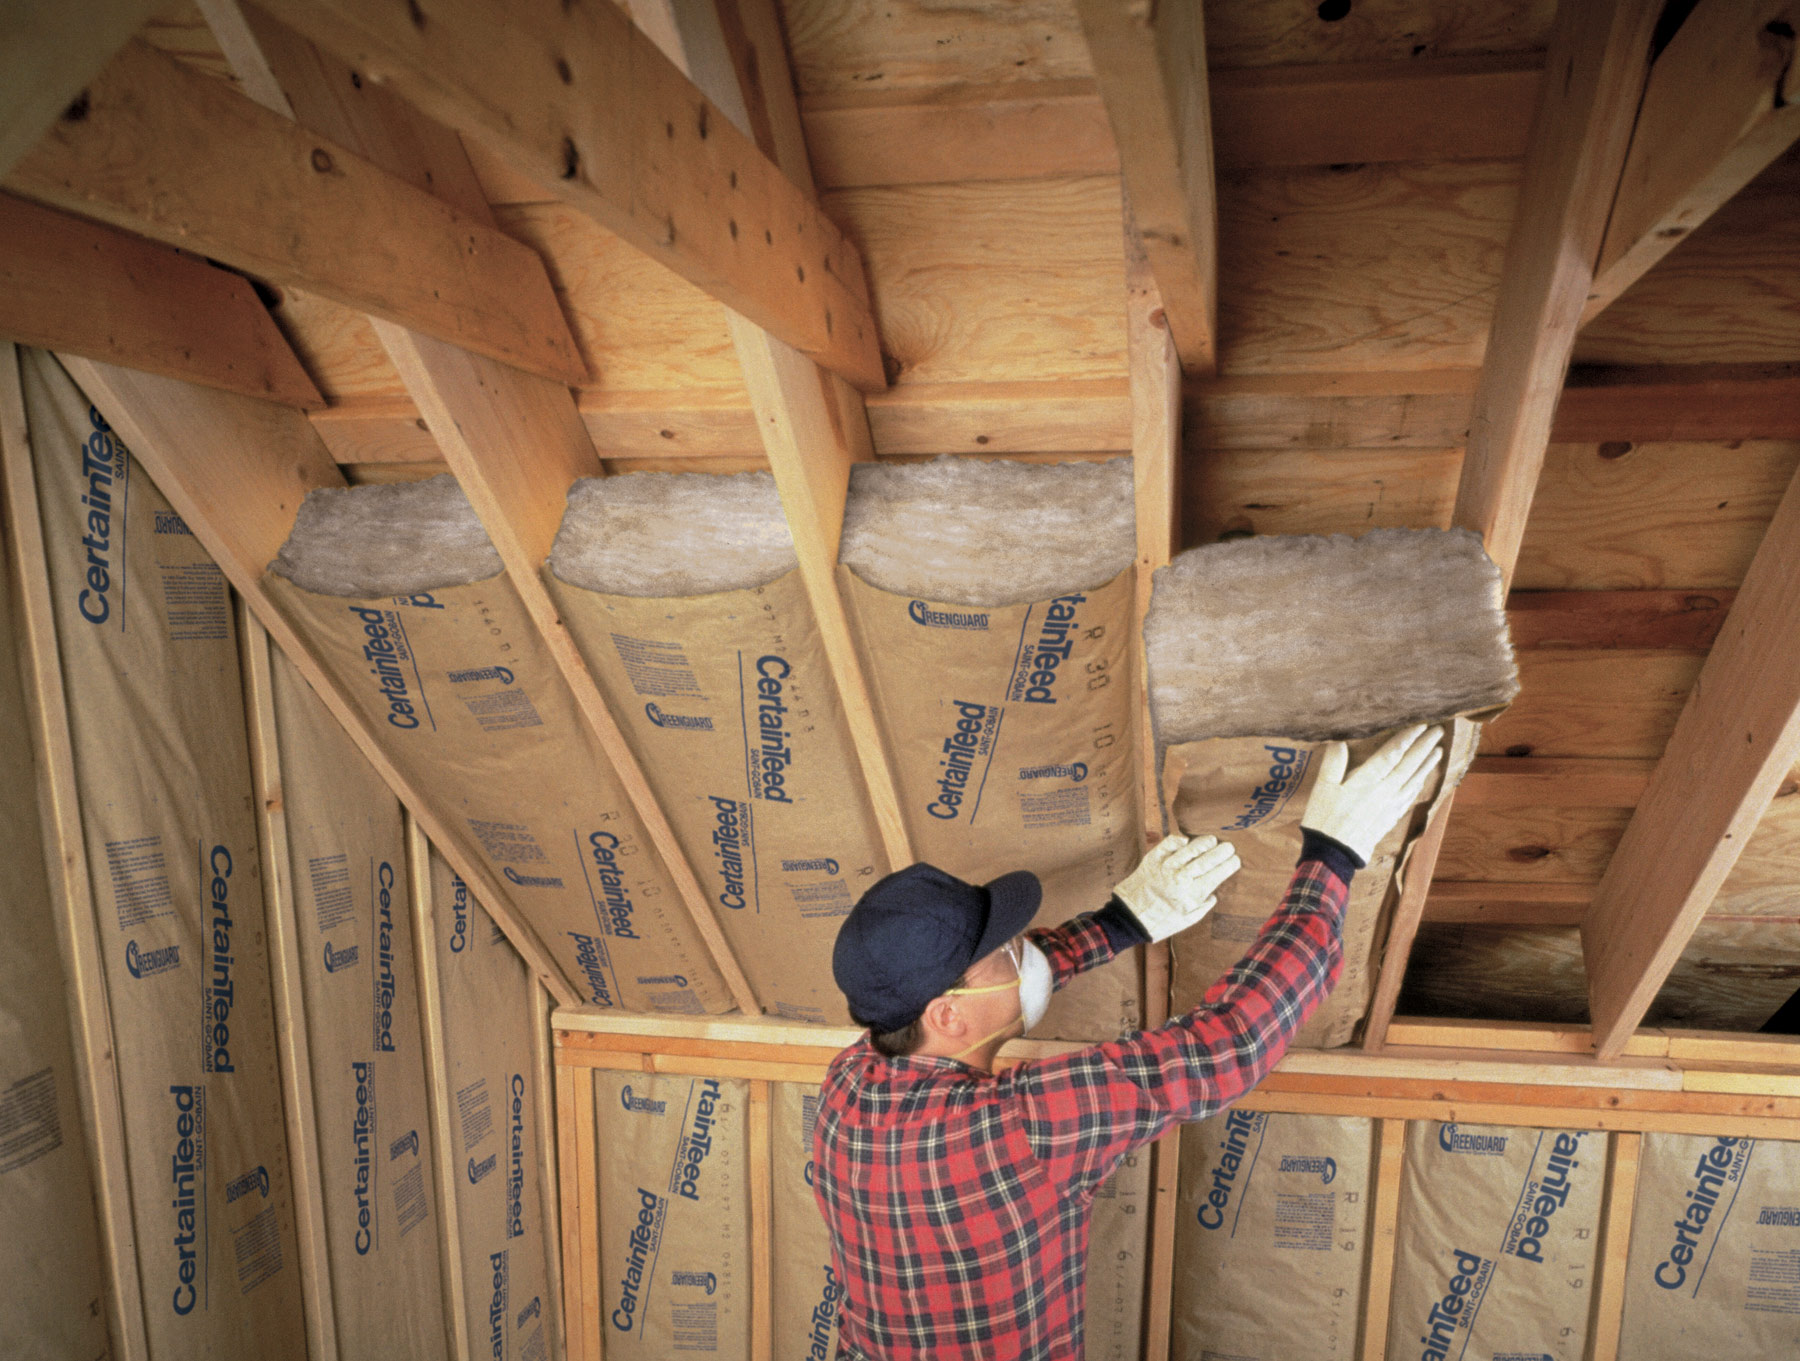 Building Code Enforcement Insulate Your Home Up To Code